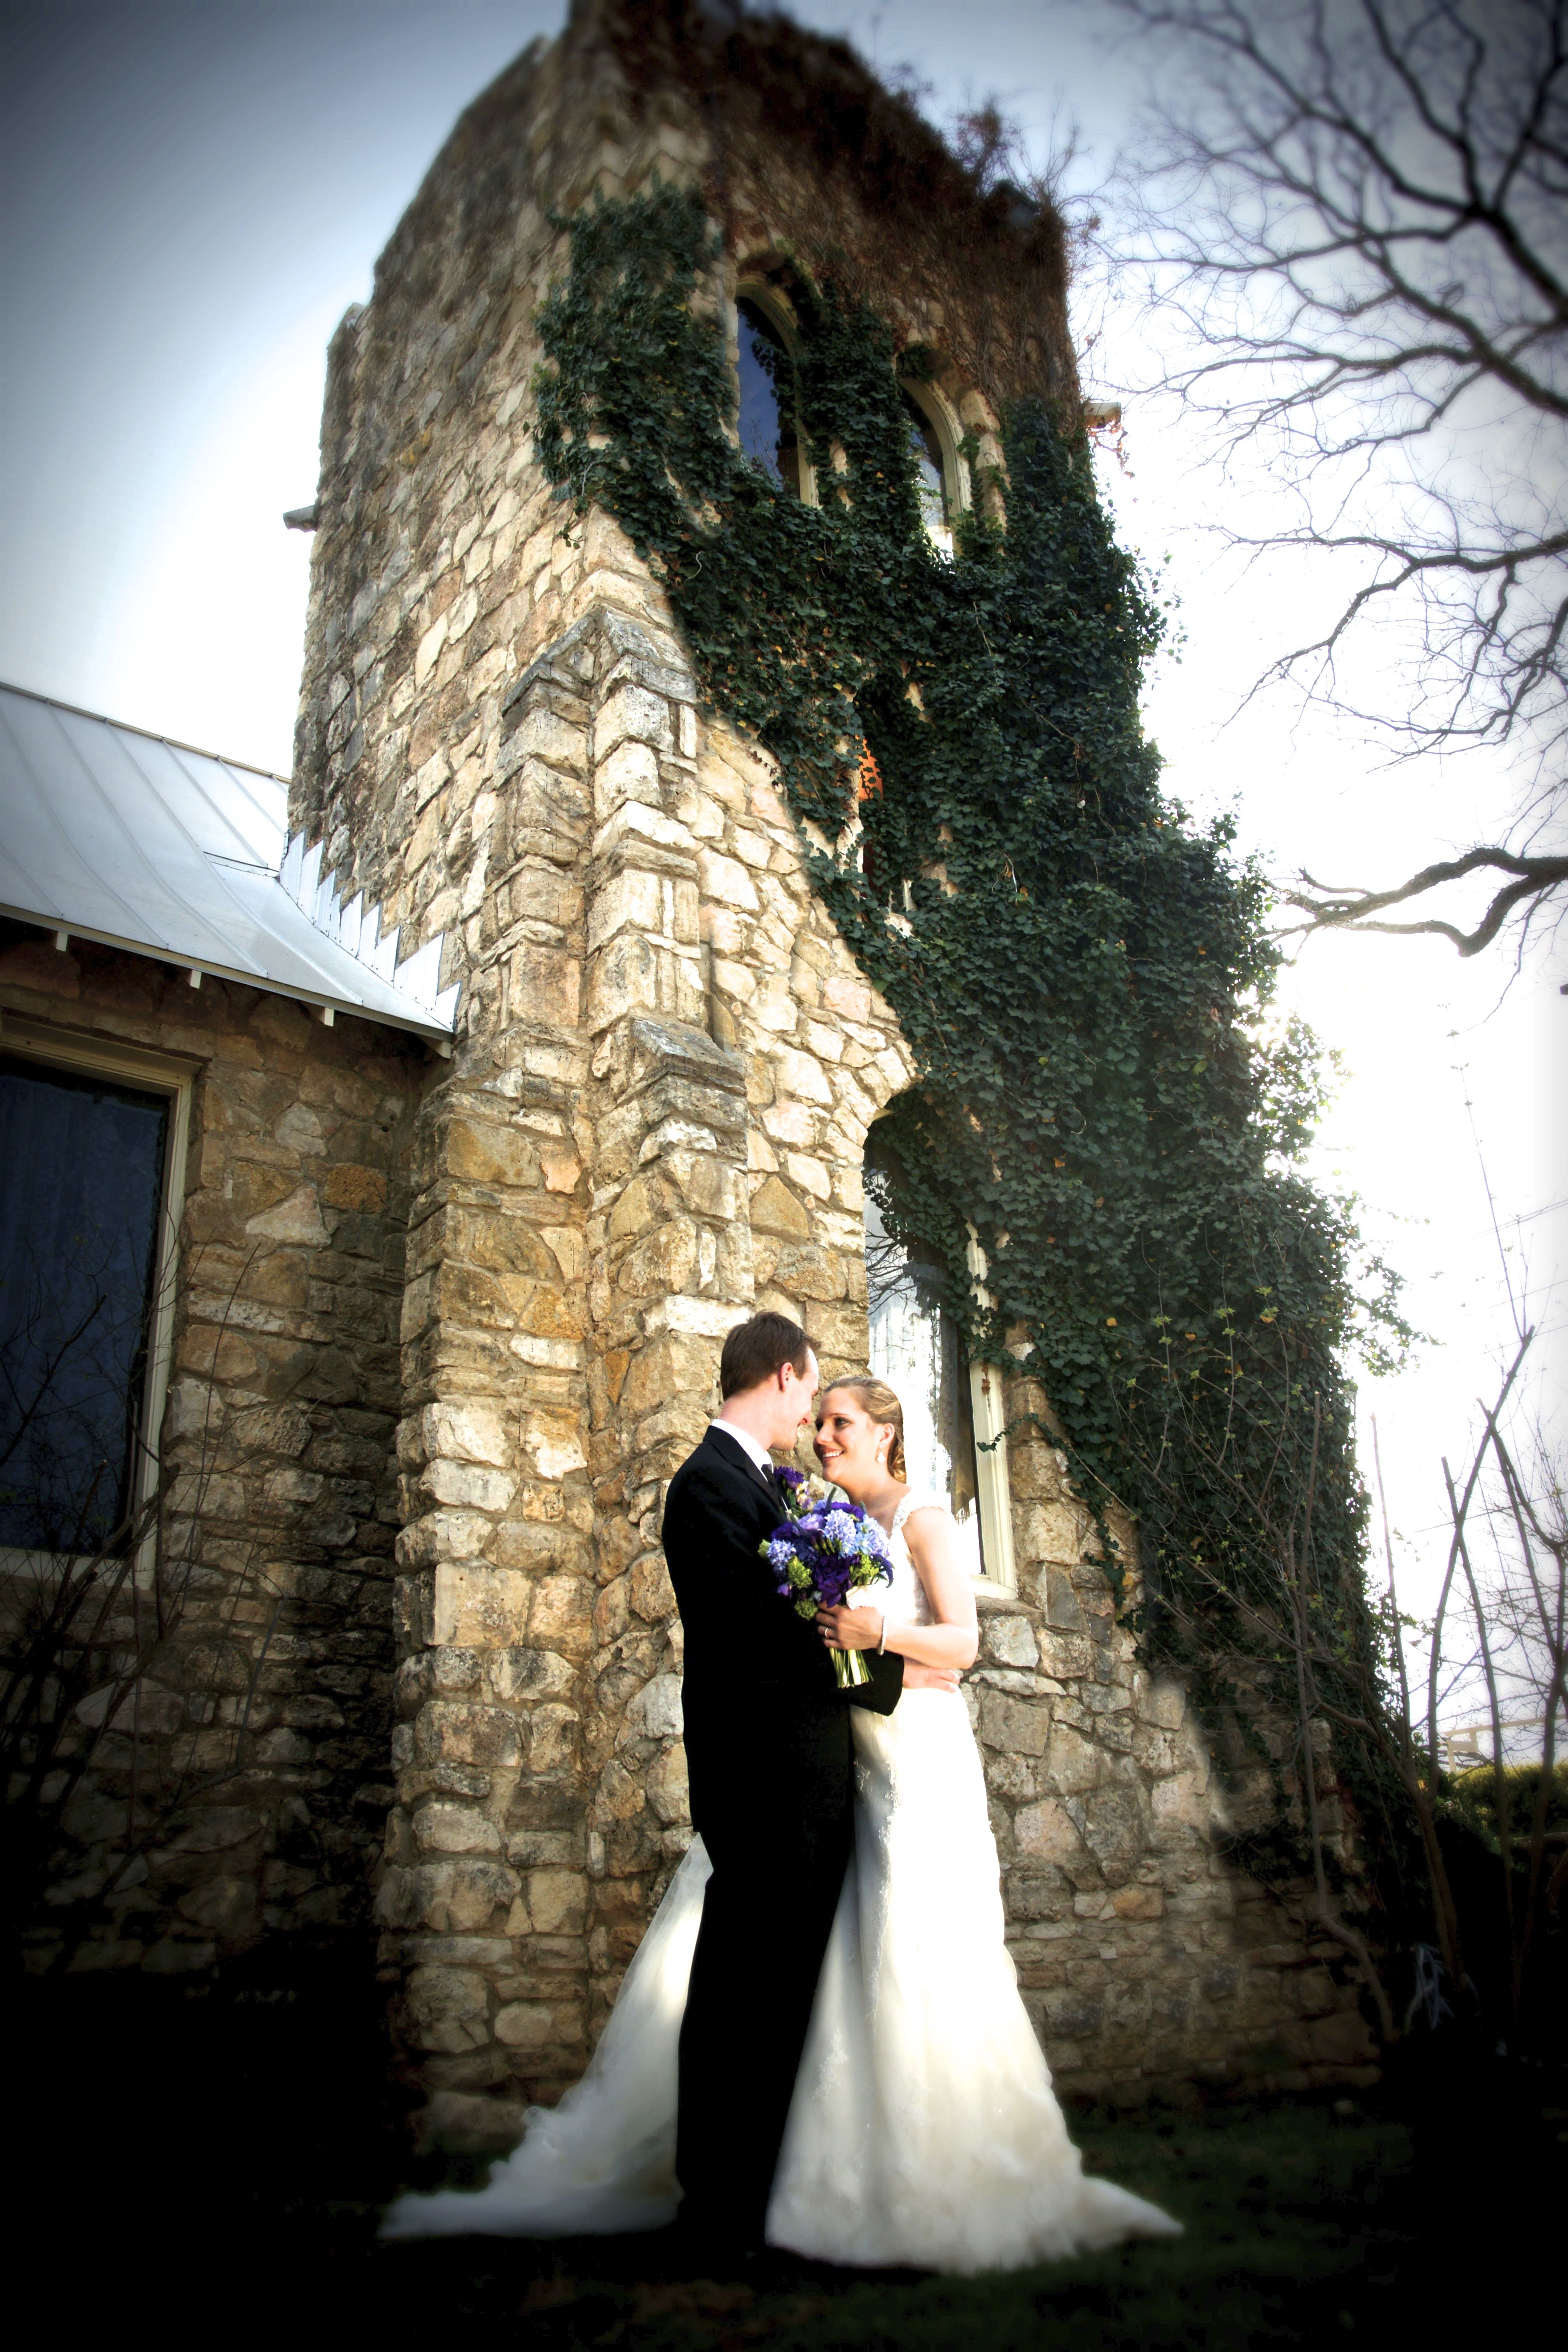 Wedding Venue hill Country Boerne TX Hill country